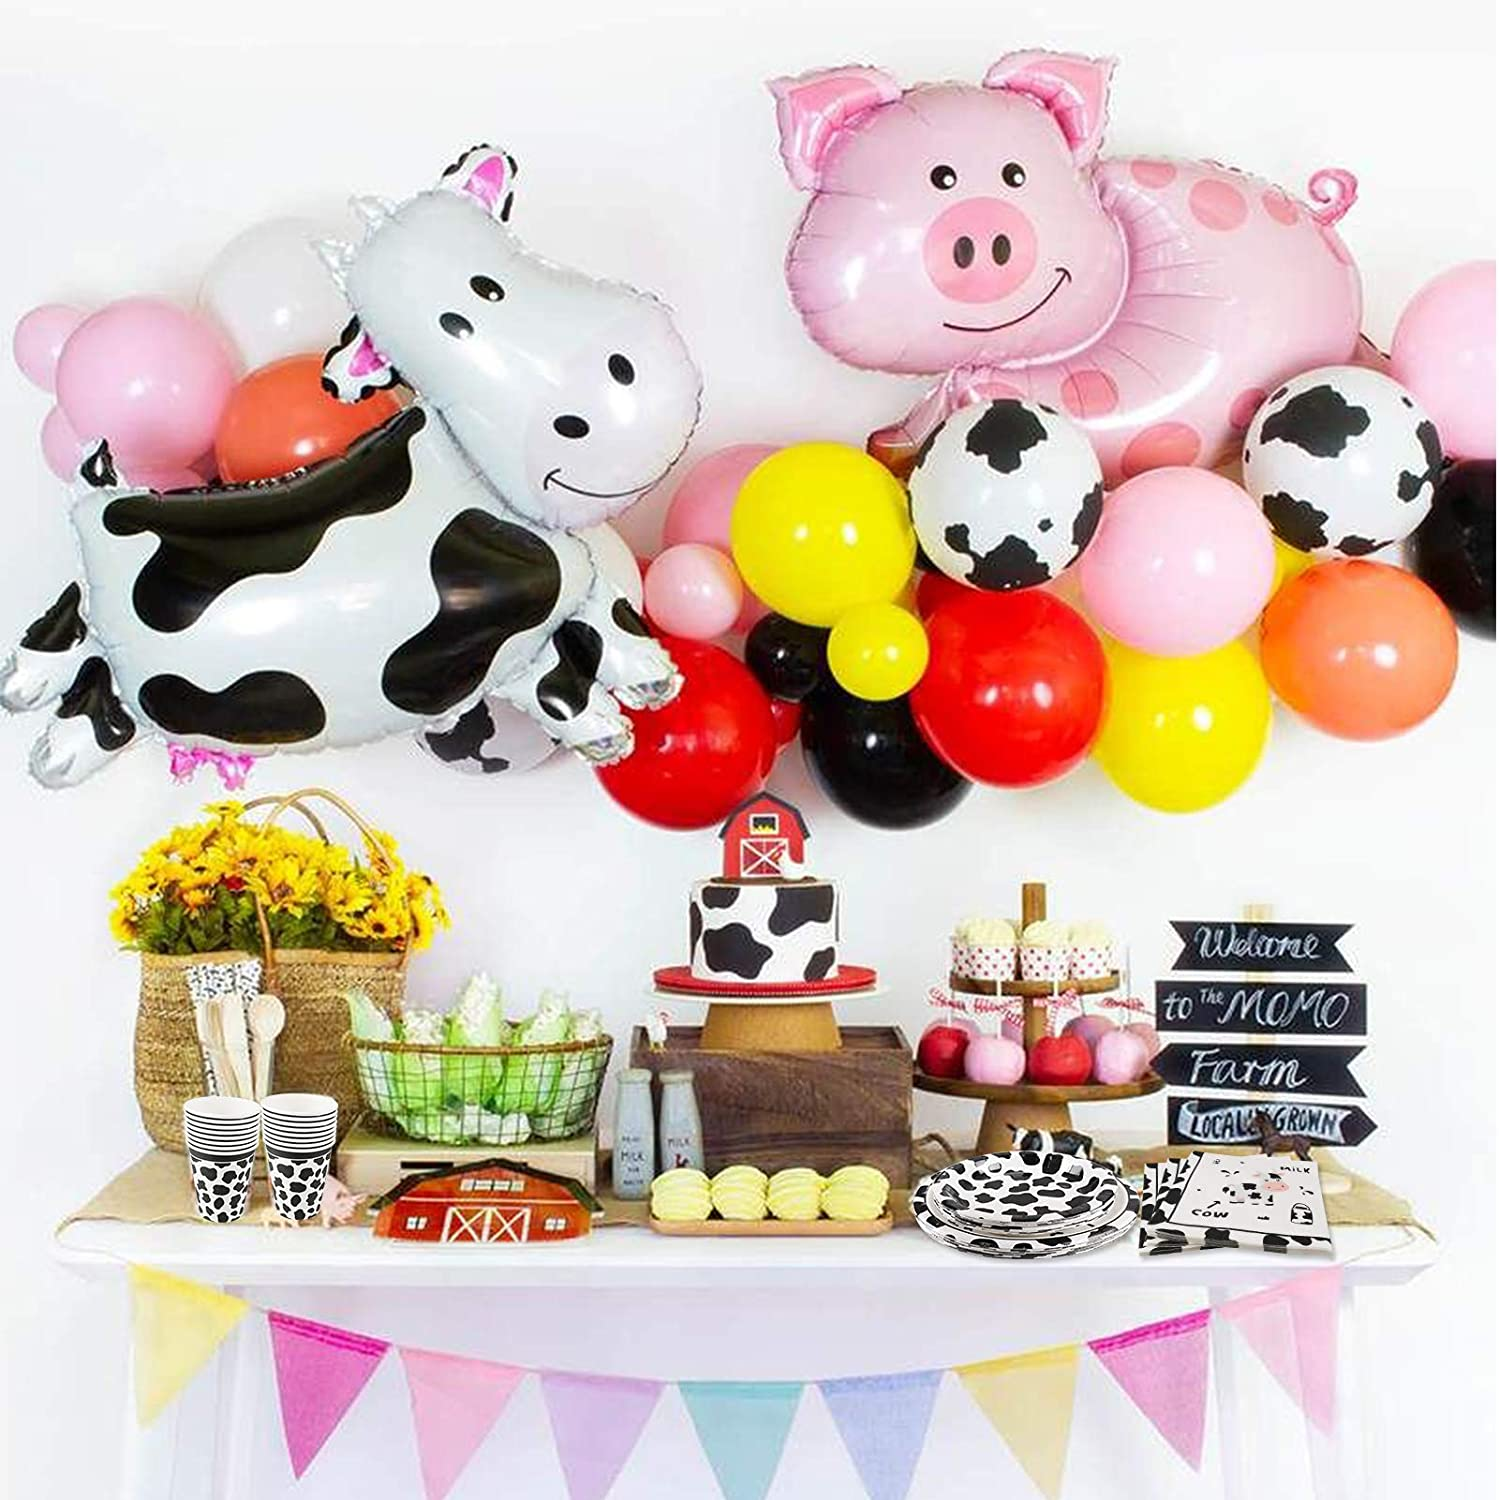 Cups for Western and Farm Animal Cow Theme Baby Shower Birthday Party Decorations Dessert Plates Cieovo Cow Print Party Supplies Set for 16 Guests Including Black and White Cow Print Dinner Plates Lunch Napkins